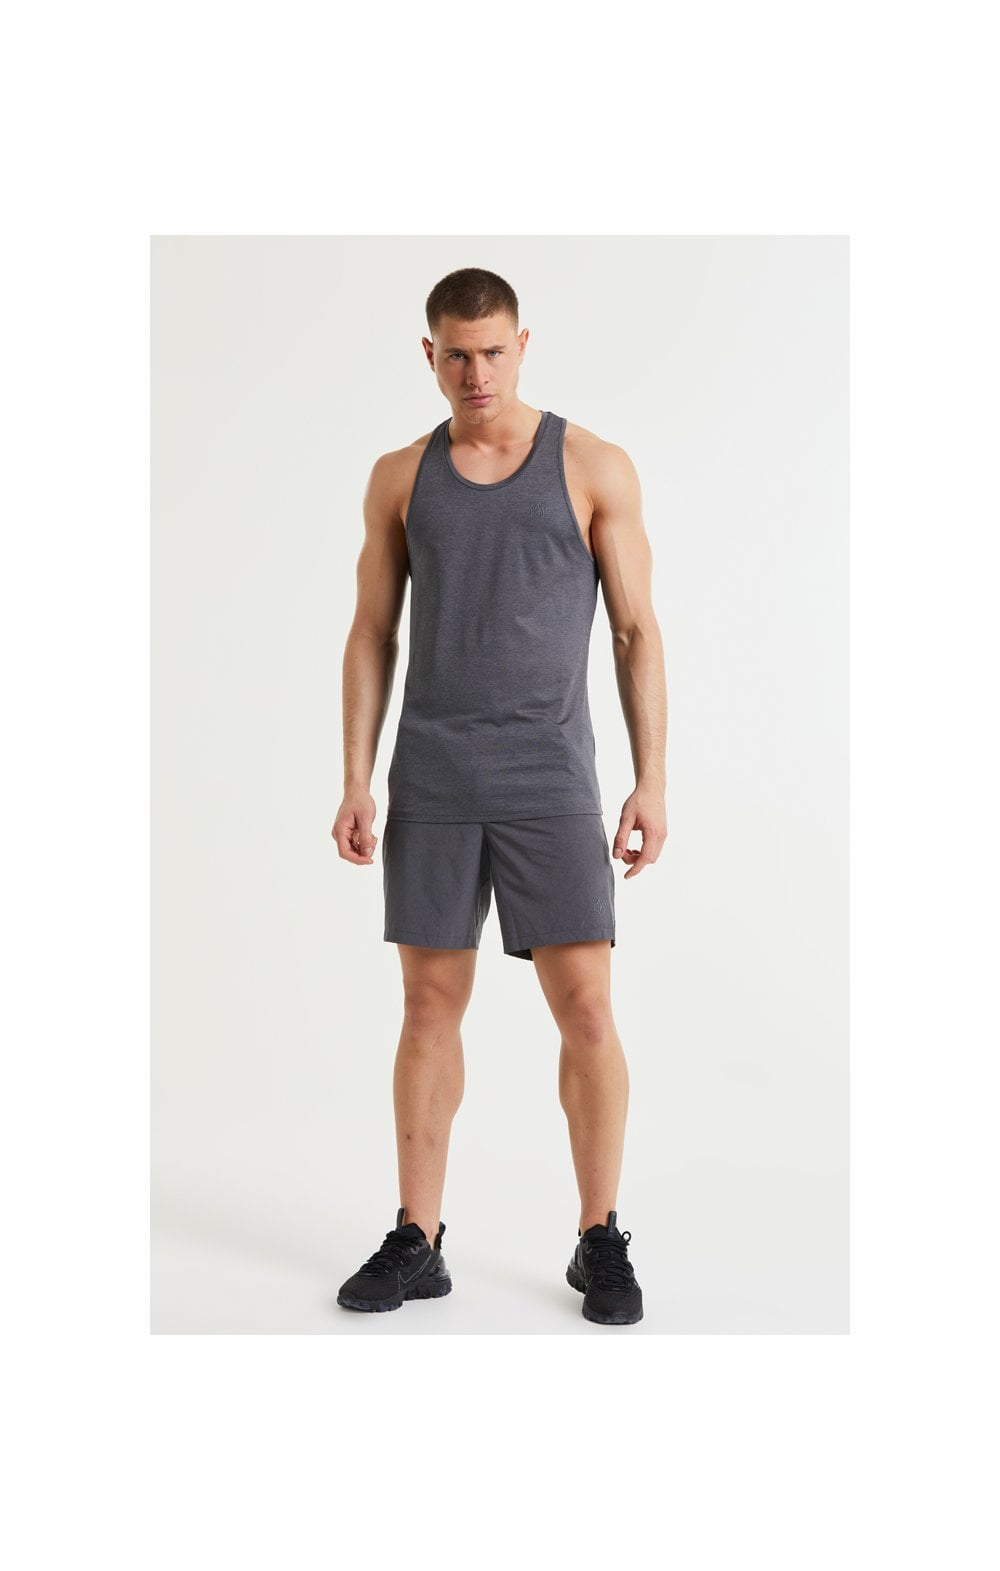 Load image into Gallery viewer, SikSilk Pressure Vest - Charcoal Marl (3)